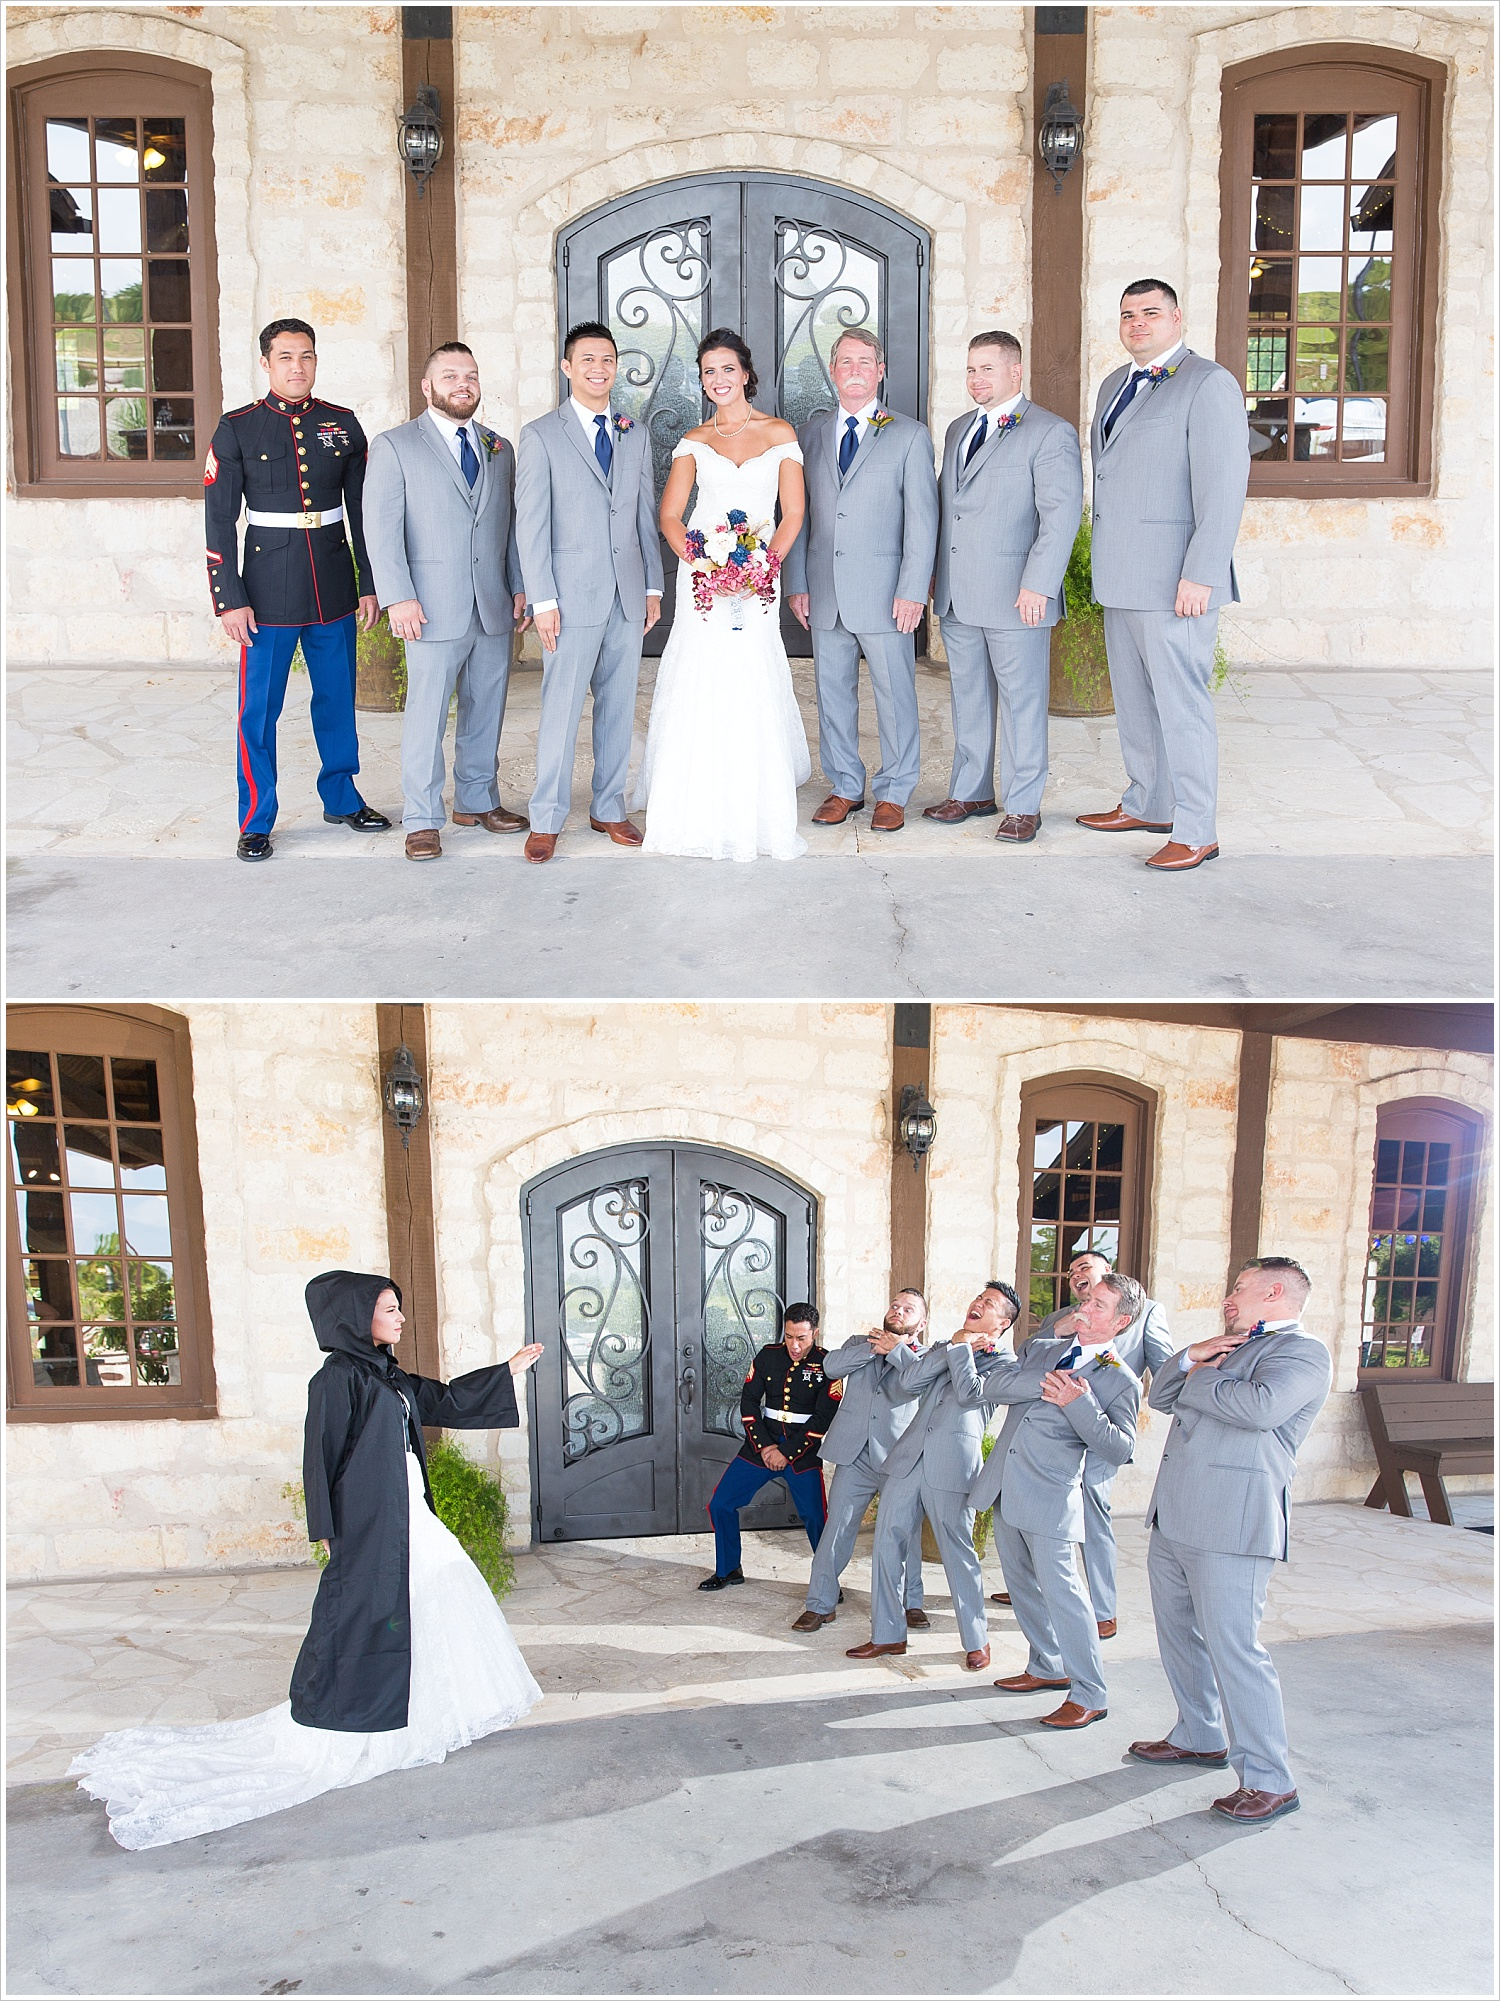 Bride dressed as Darth Vader poses with groomsmen, summer blush and navy wedding at Stone Hall at The Springs in McKinney, Texas, Jason & Melaina Photography, www.jasonandmelaina.com